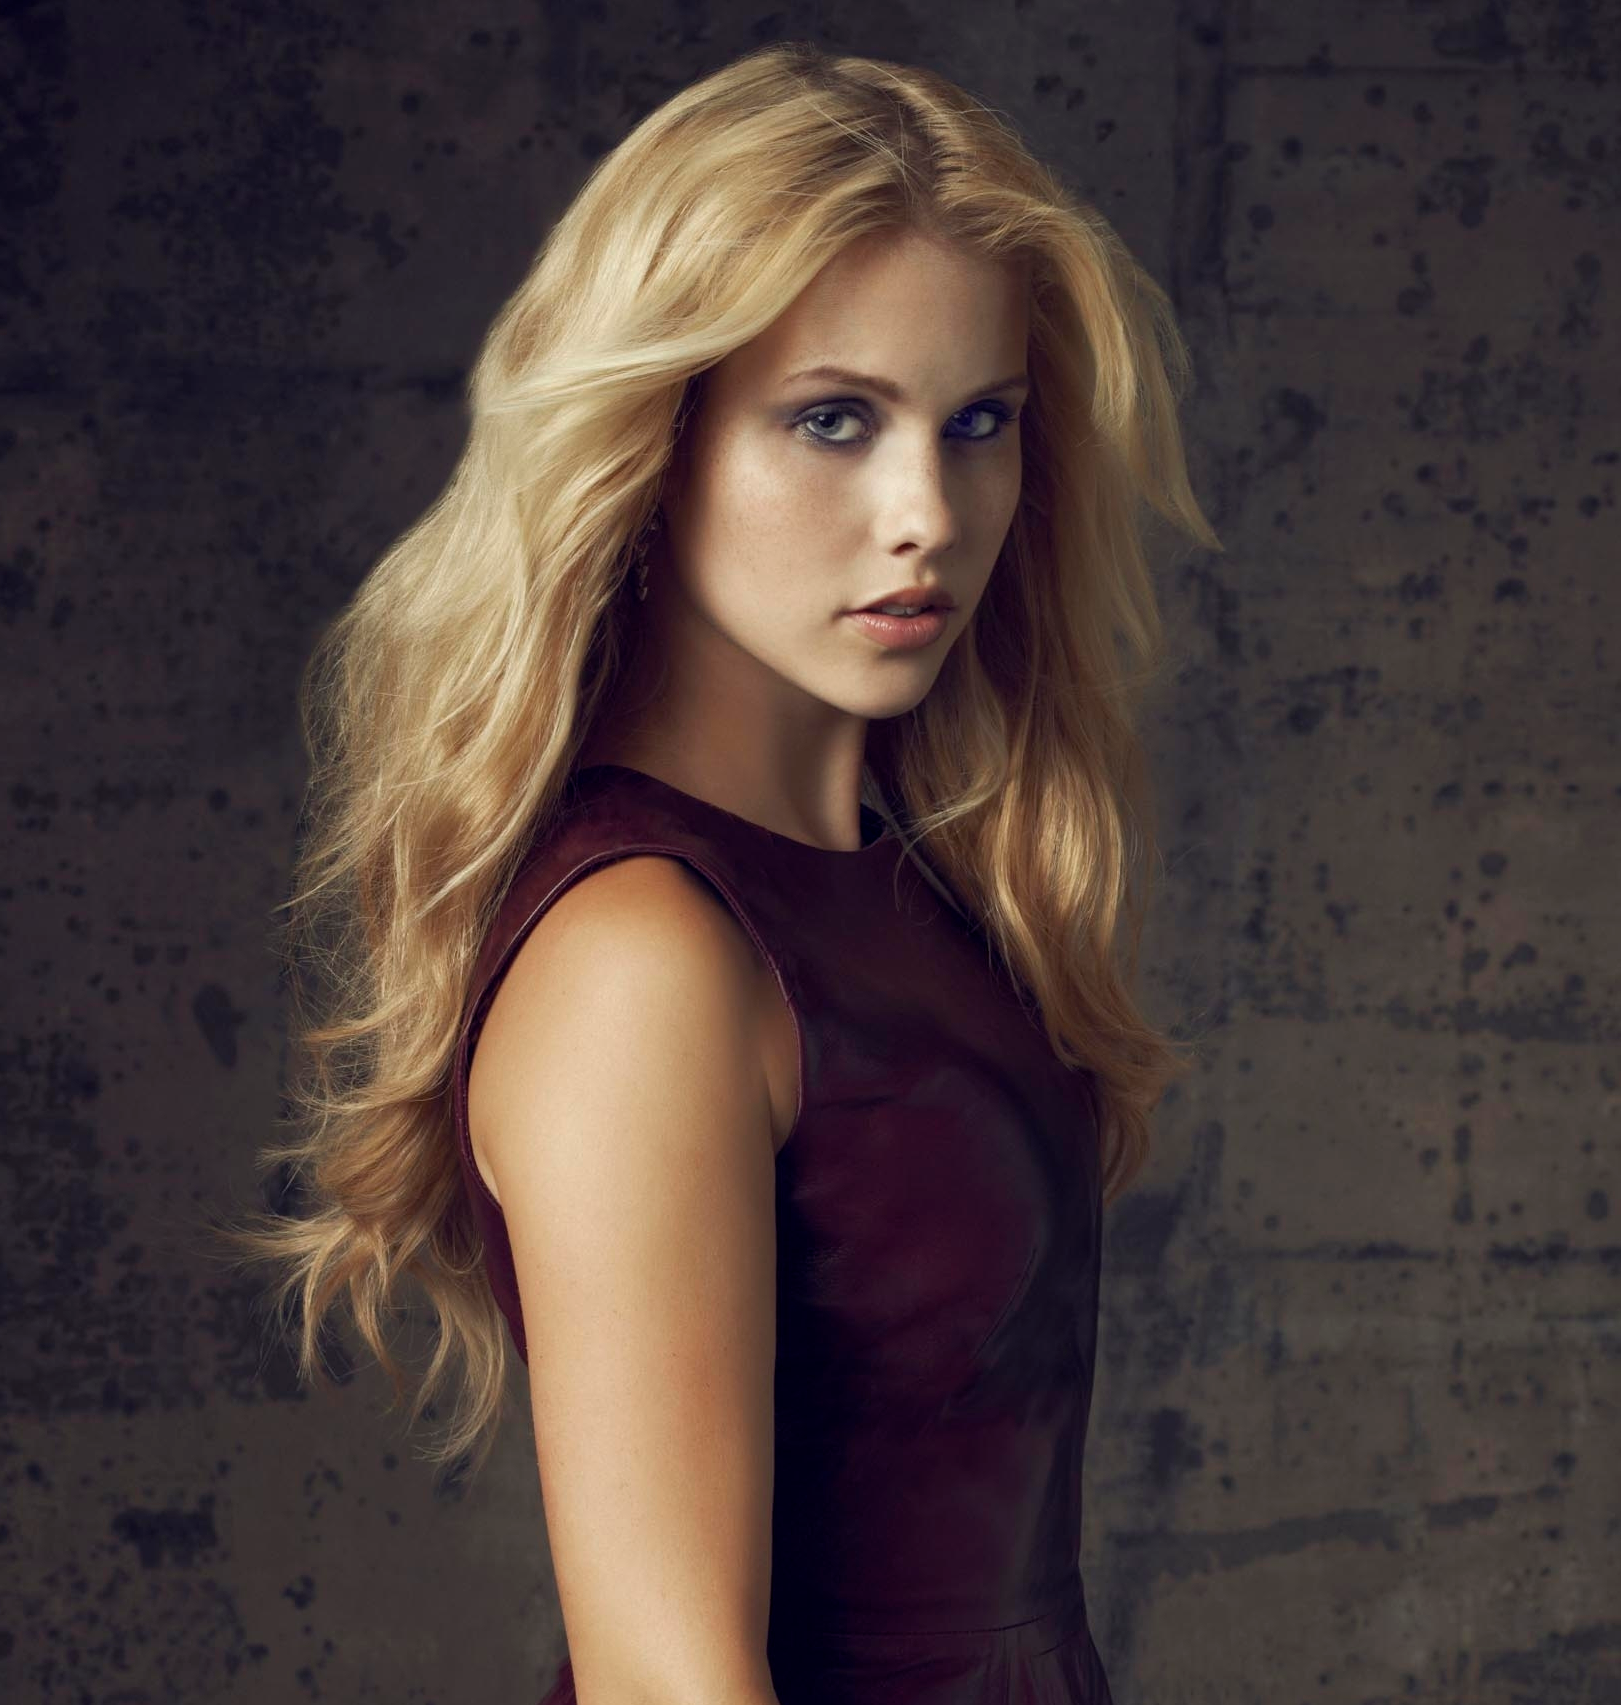 Rebekah Mikaelson | The Vampr Vampire Diaries Wikia | Fandom |Rebekah Vampire Diaries Hair